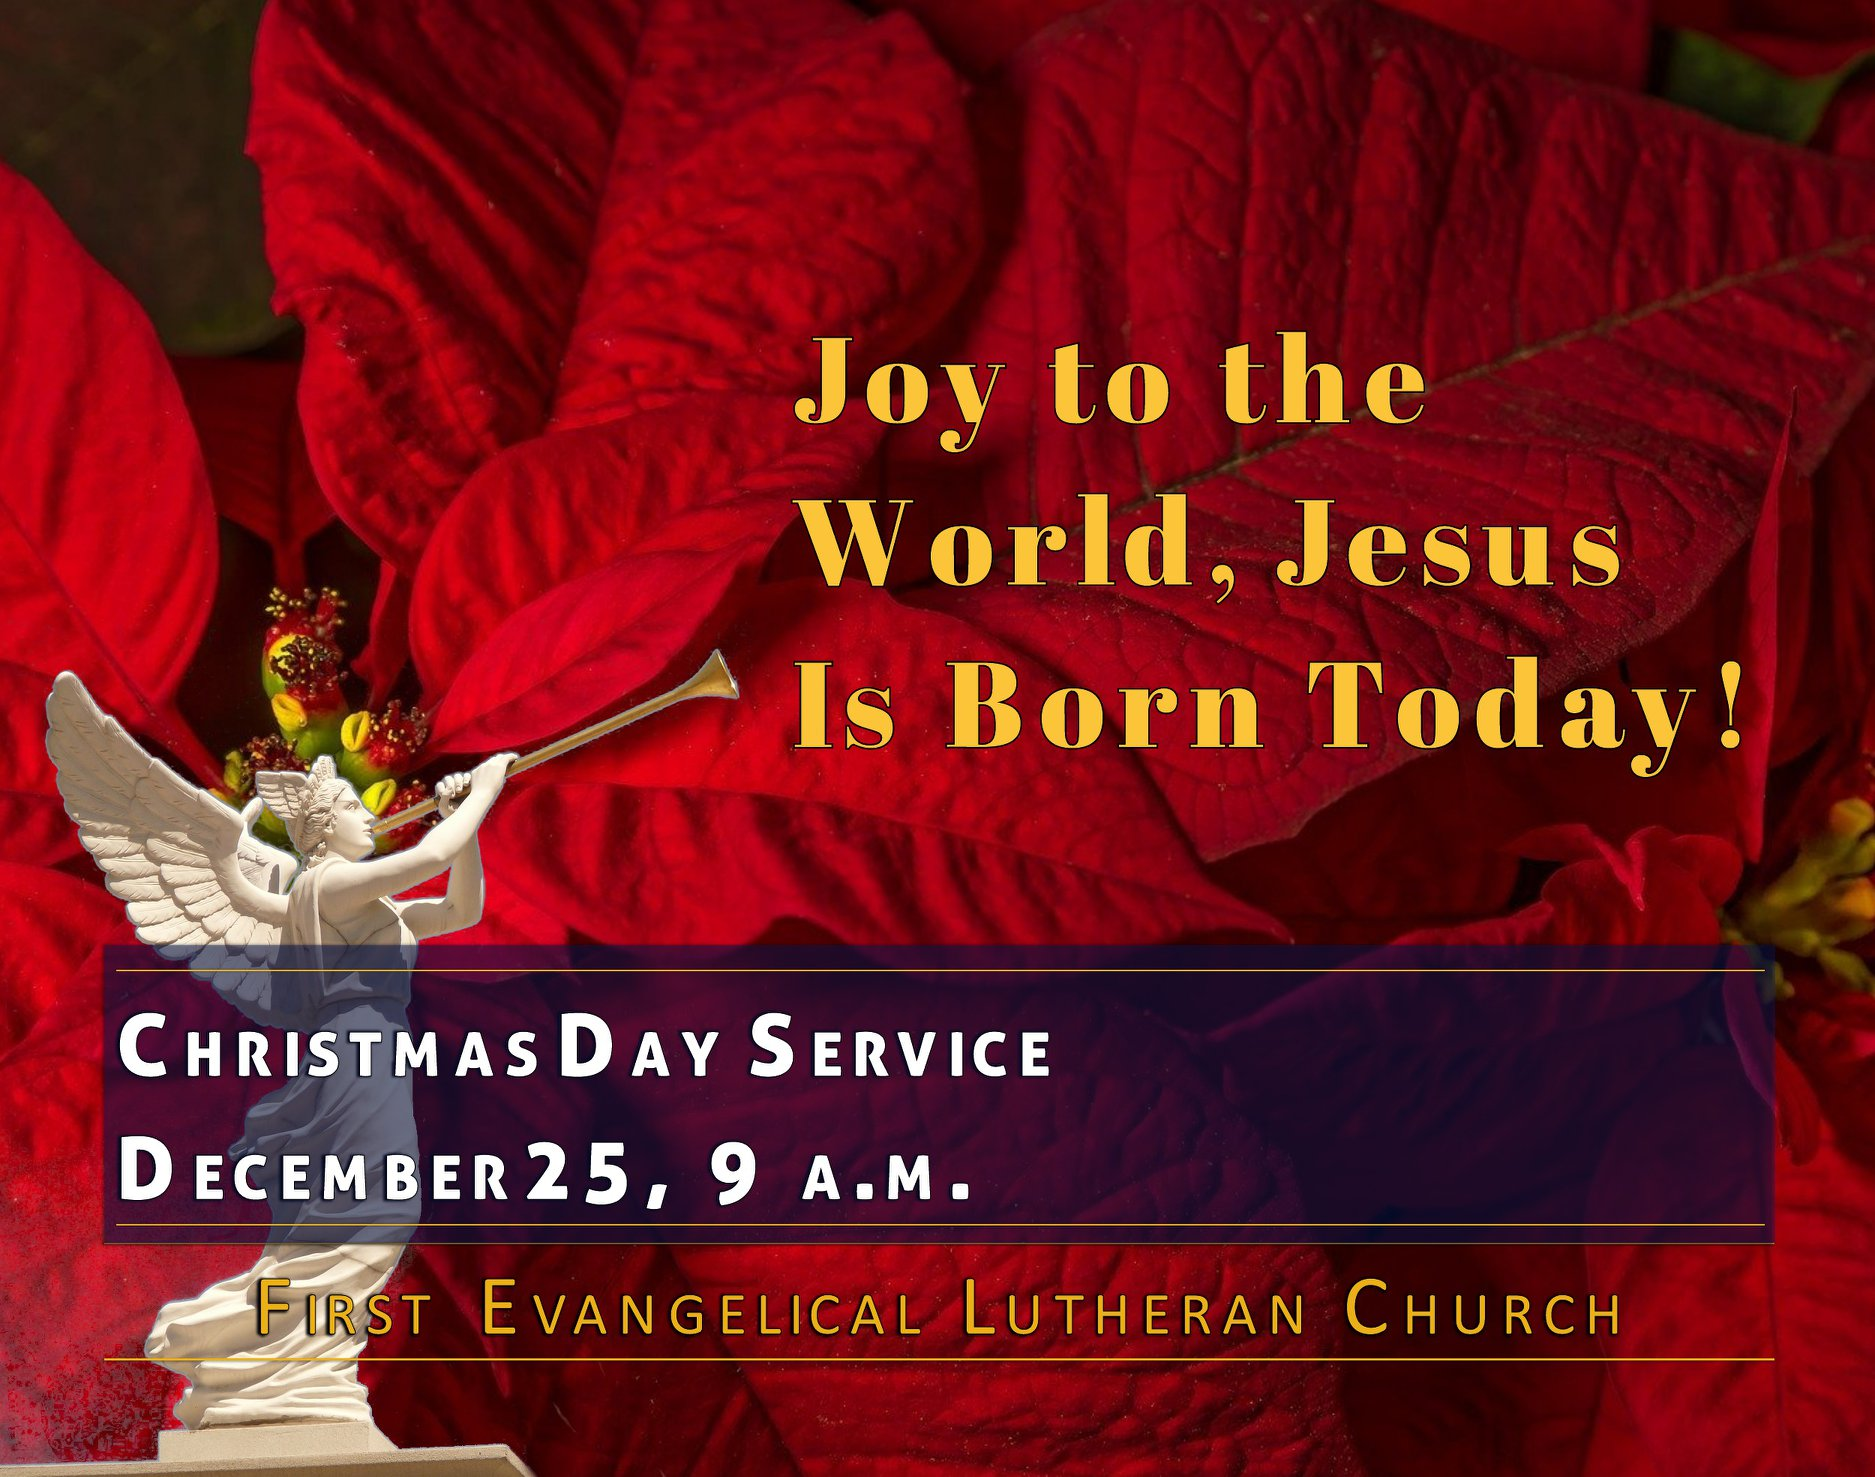 12/25/2019 - Christmas Day Service, 9 a.m.